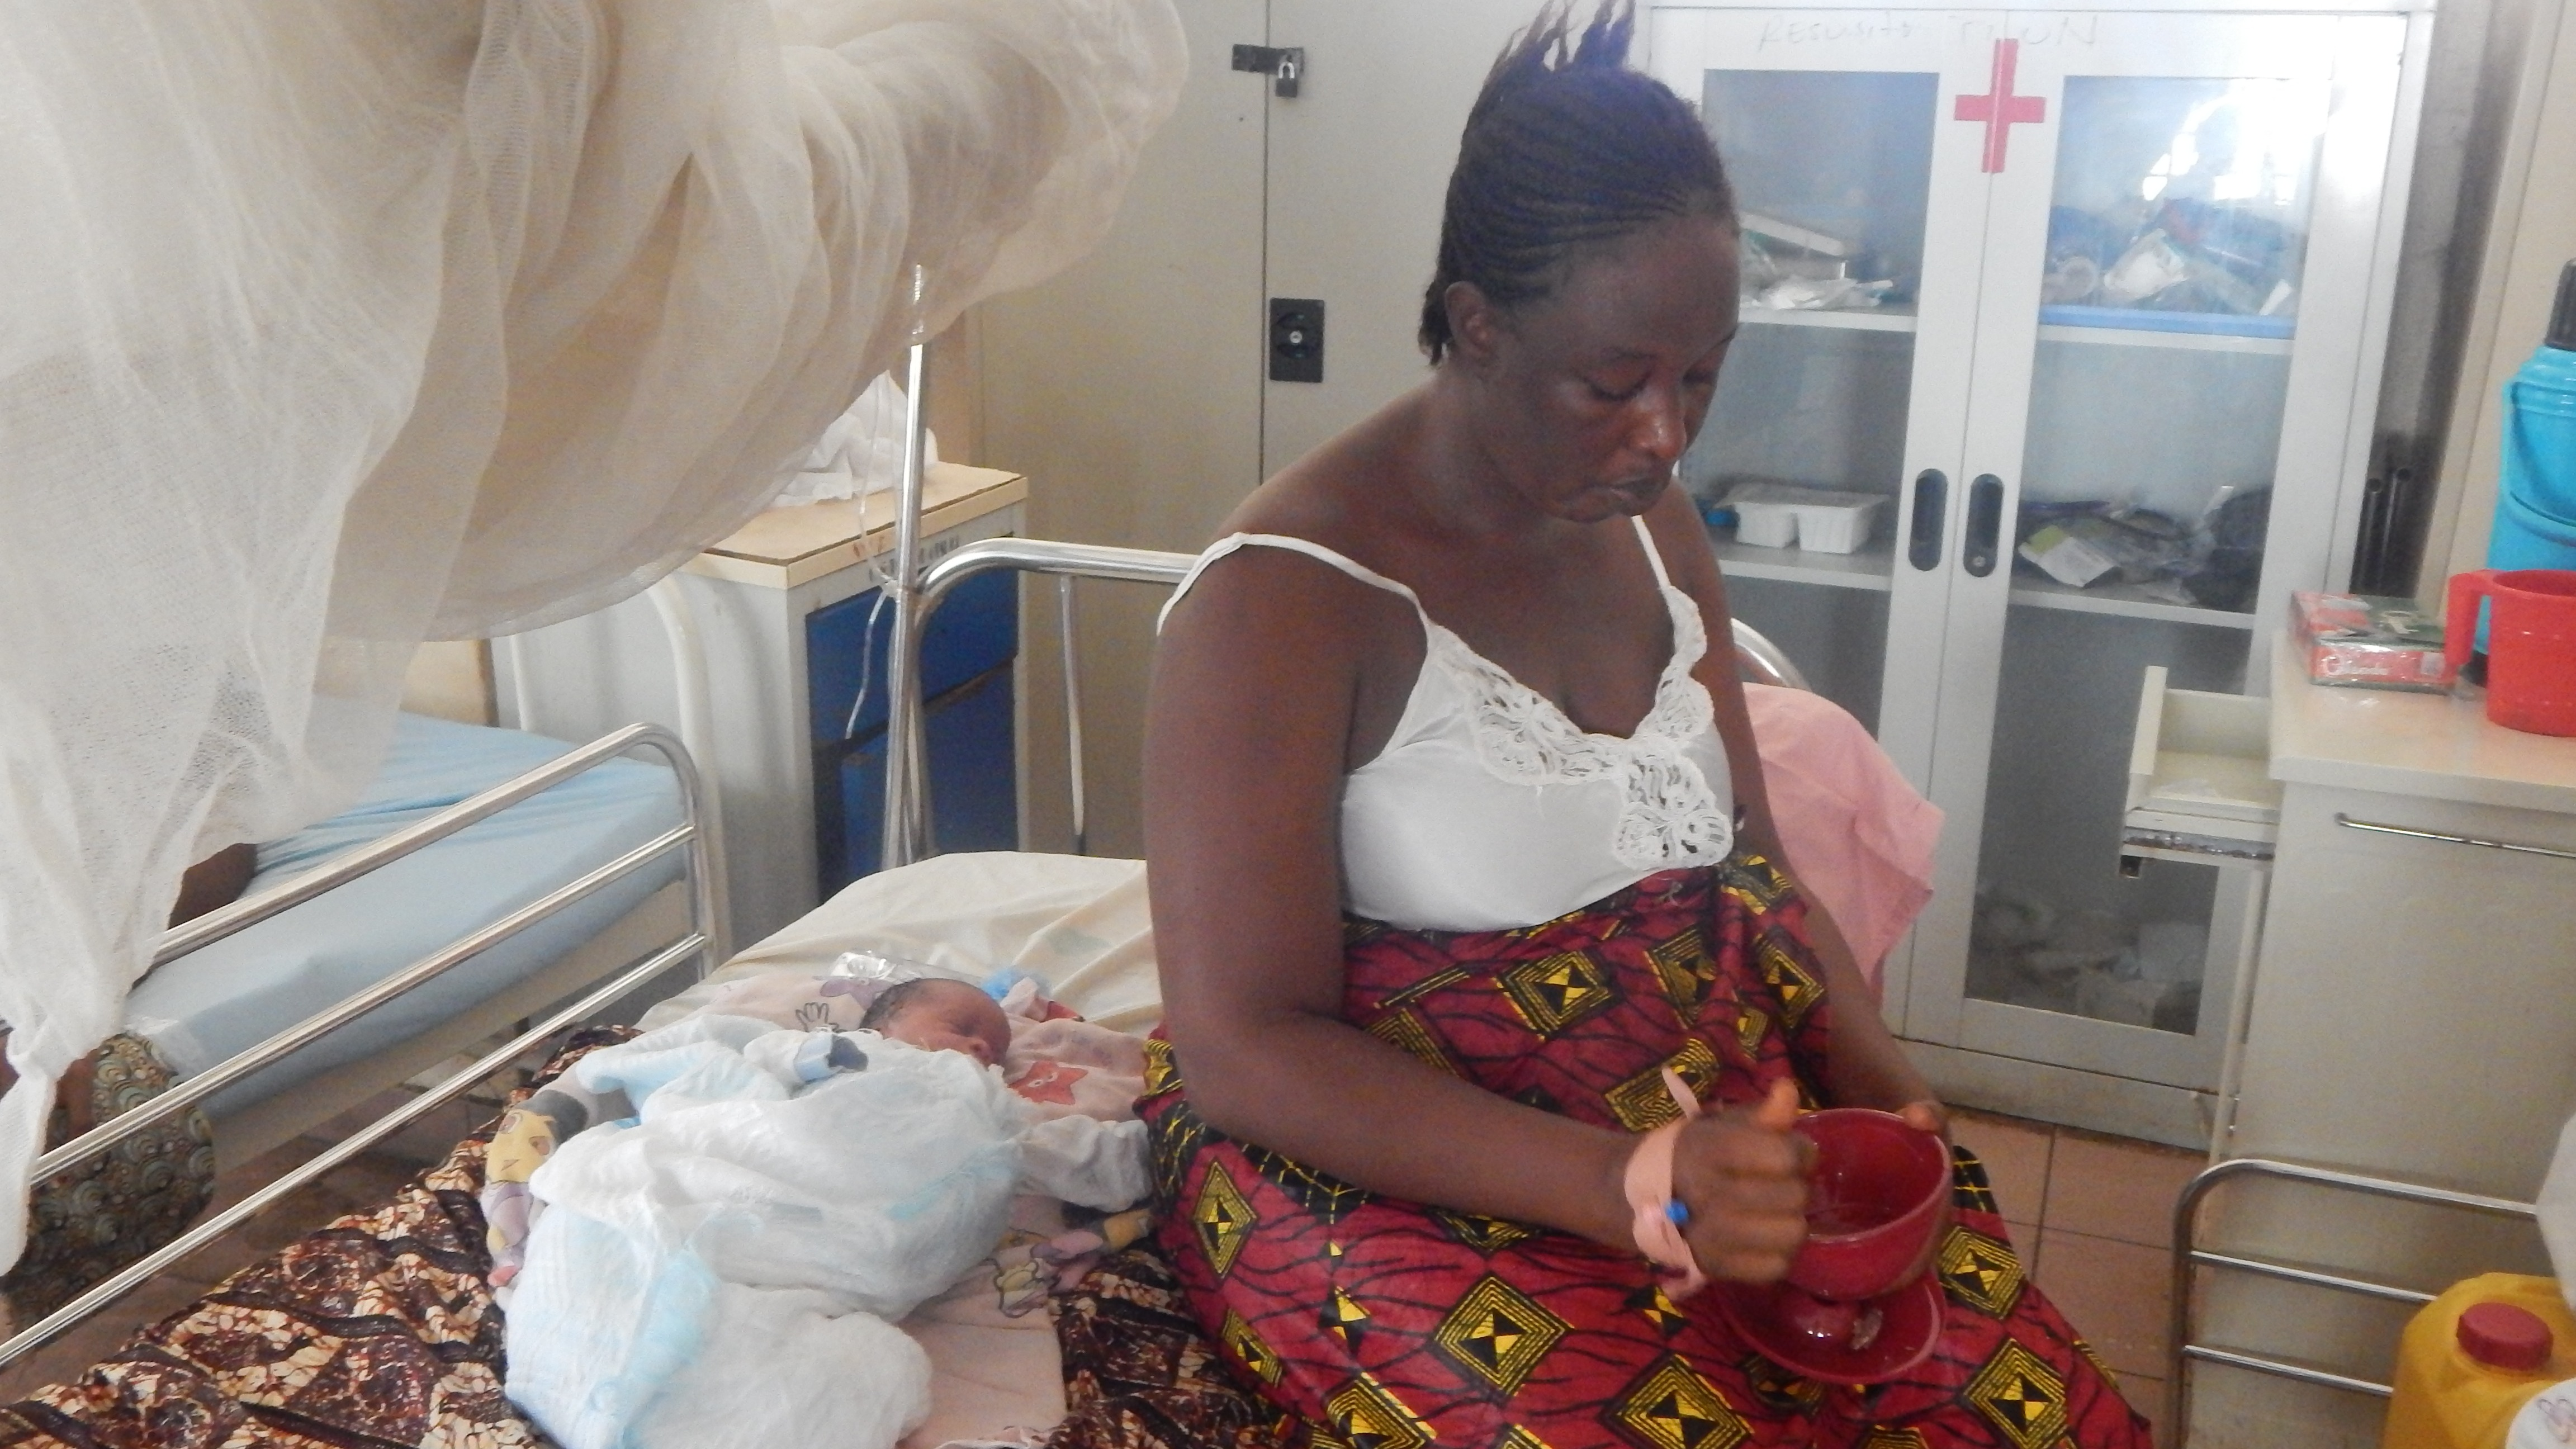 Aisha Kargbo sits besides her newborn child at the PCMH (Cottage) Hospital in Freetown.